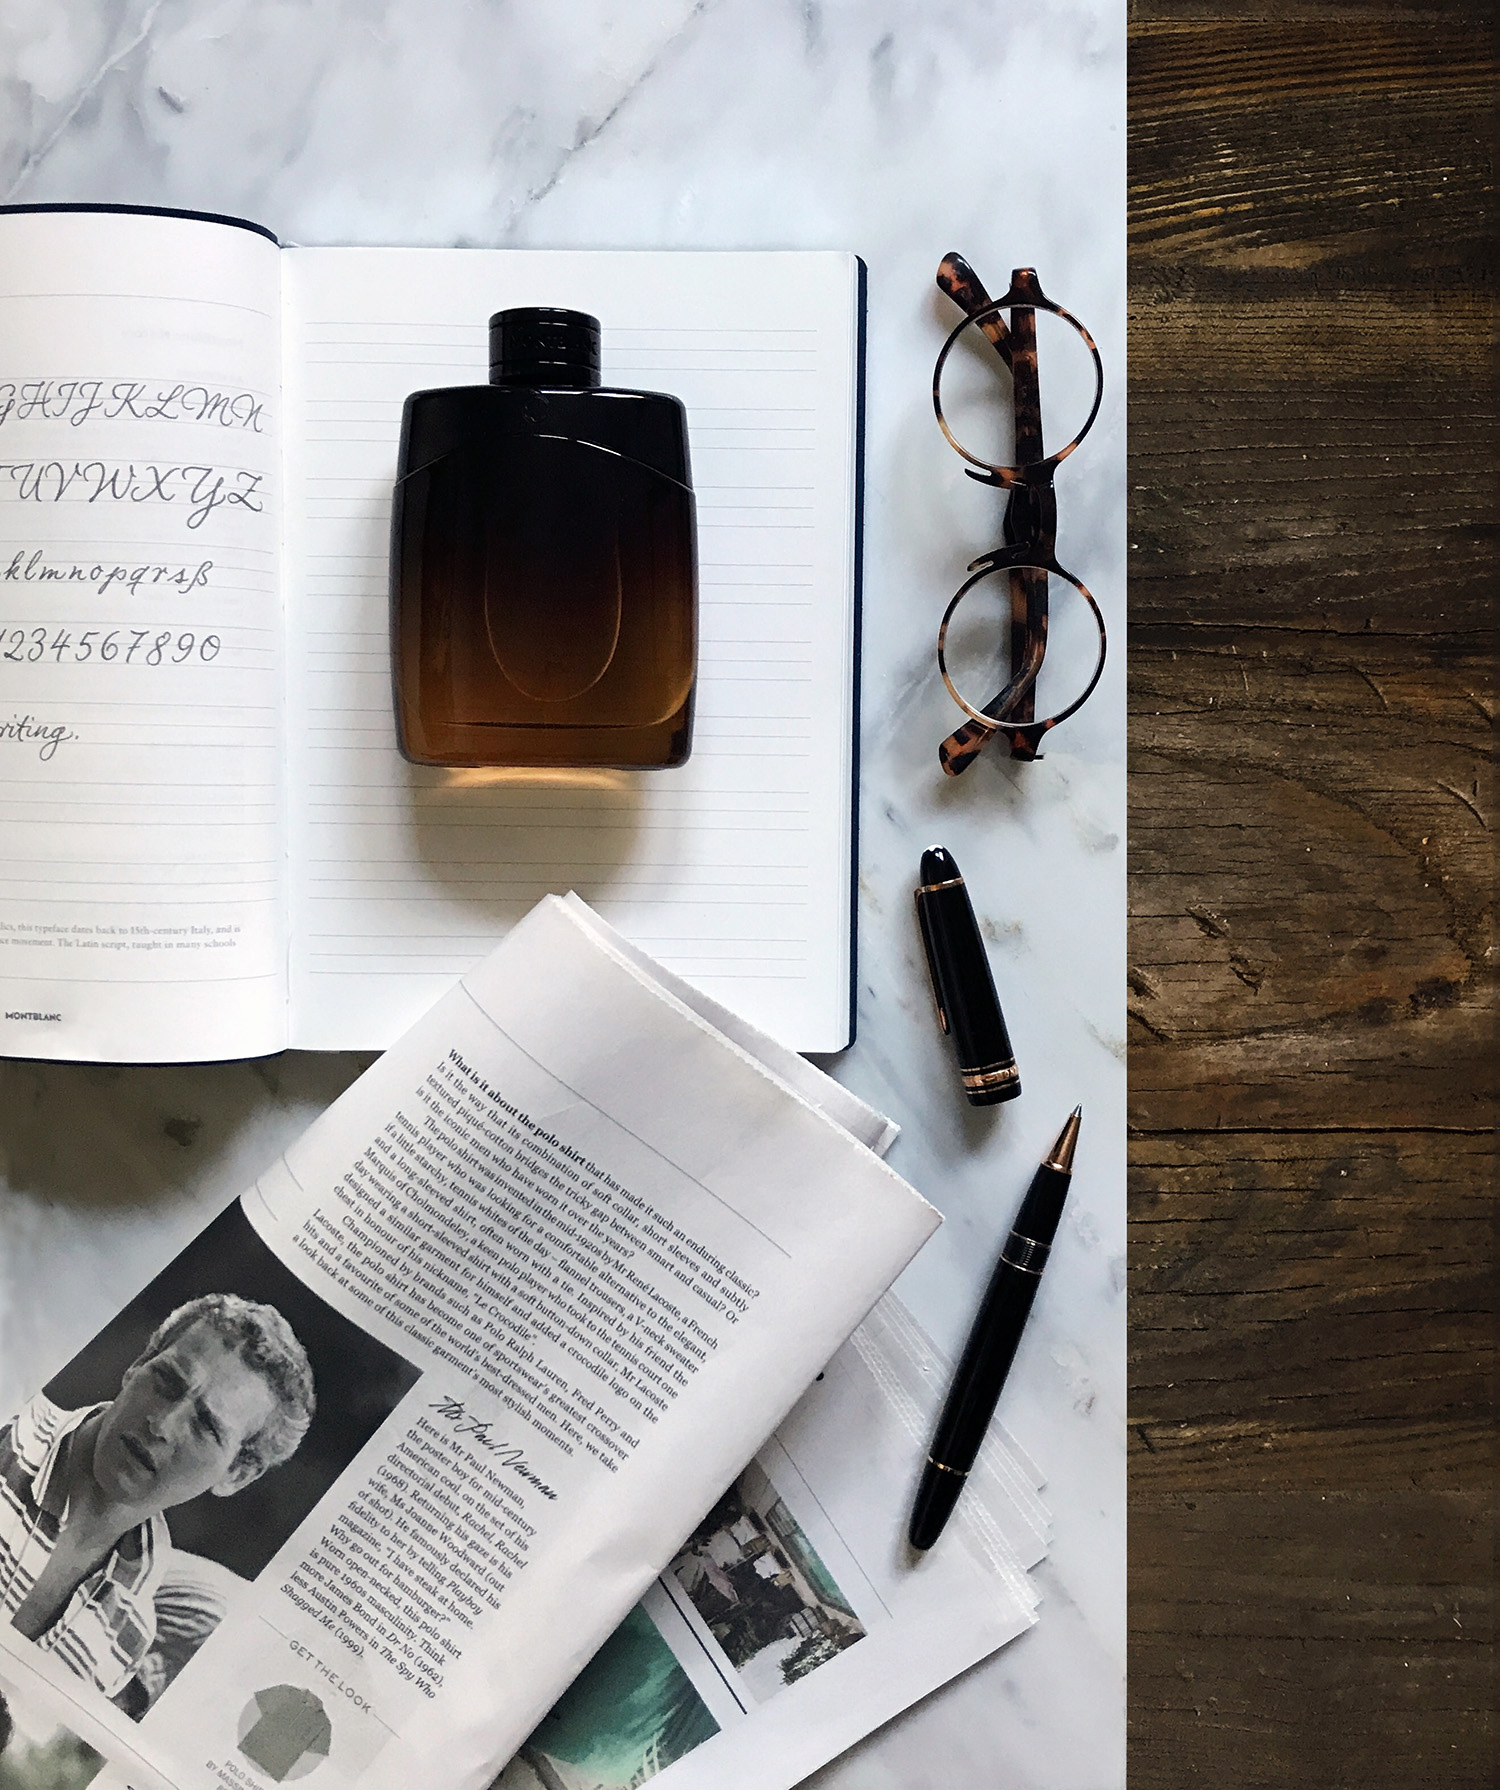 Fall Fragrance: Montblanc Legend Night